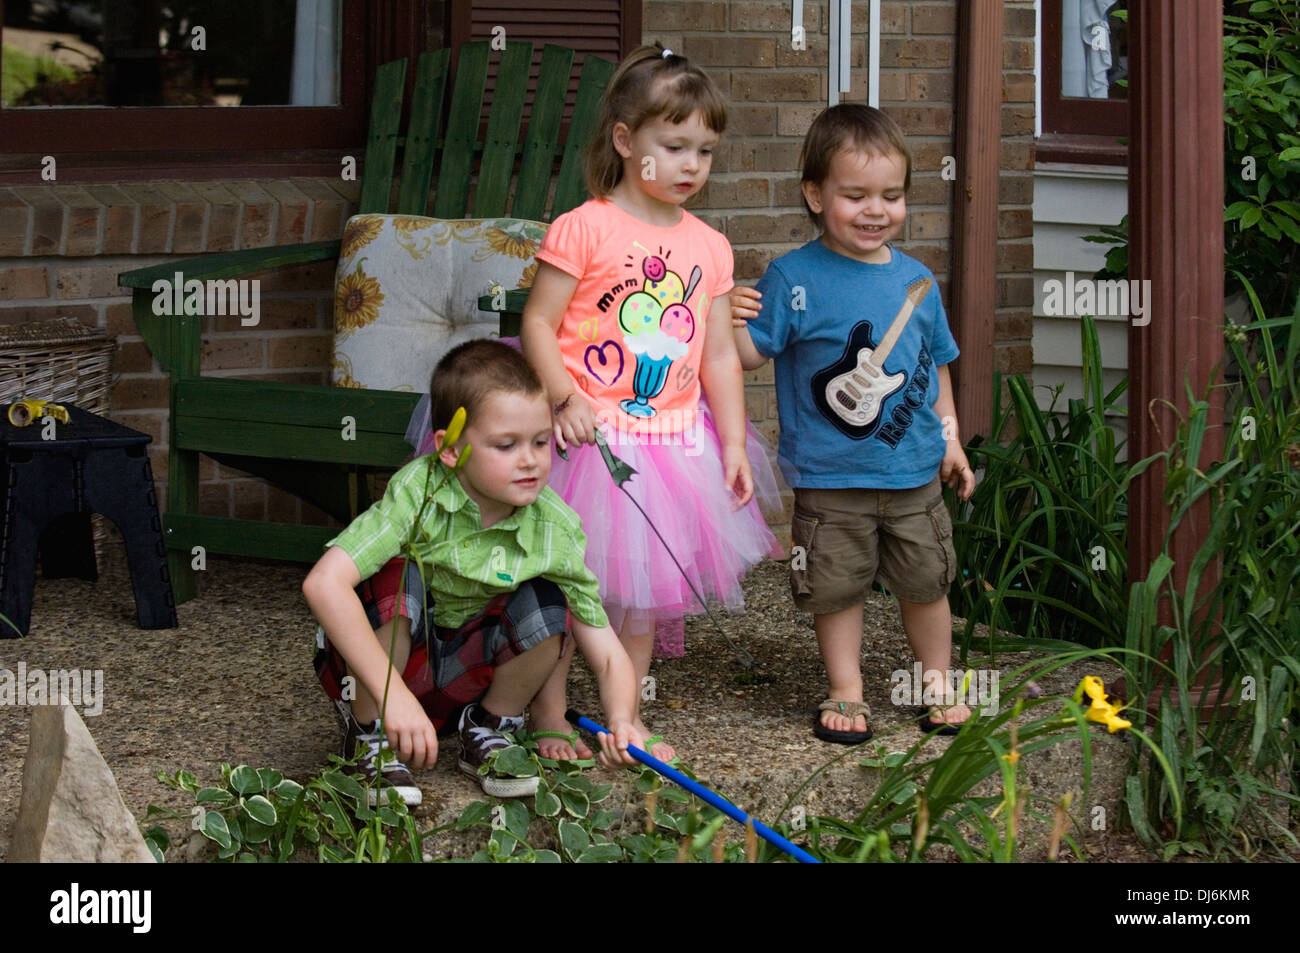 Five Year Old Brother , Three Year Old Sister and Two Year Old Cousin Playing on Porch of Suburban Home - Stock Image